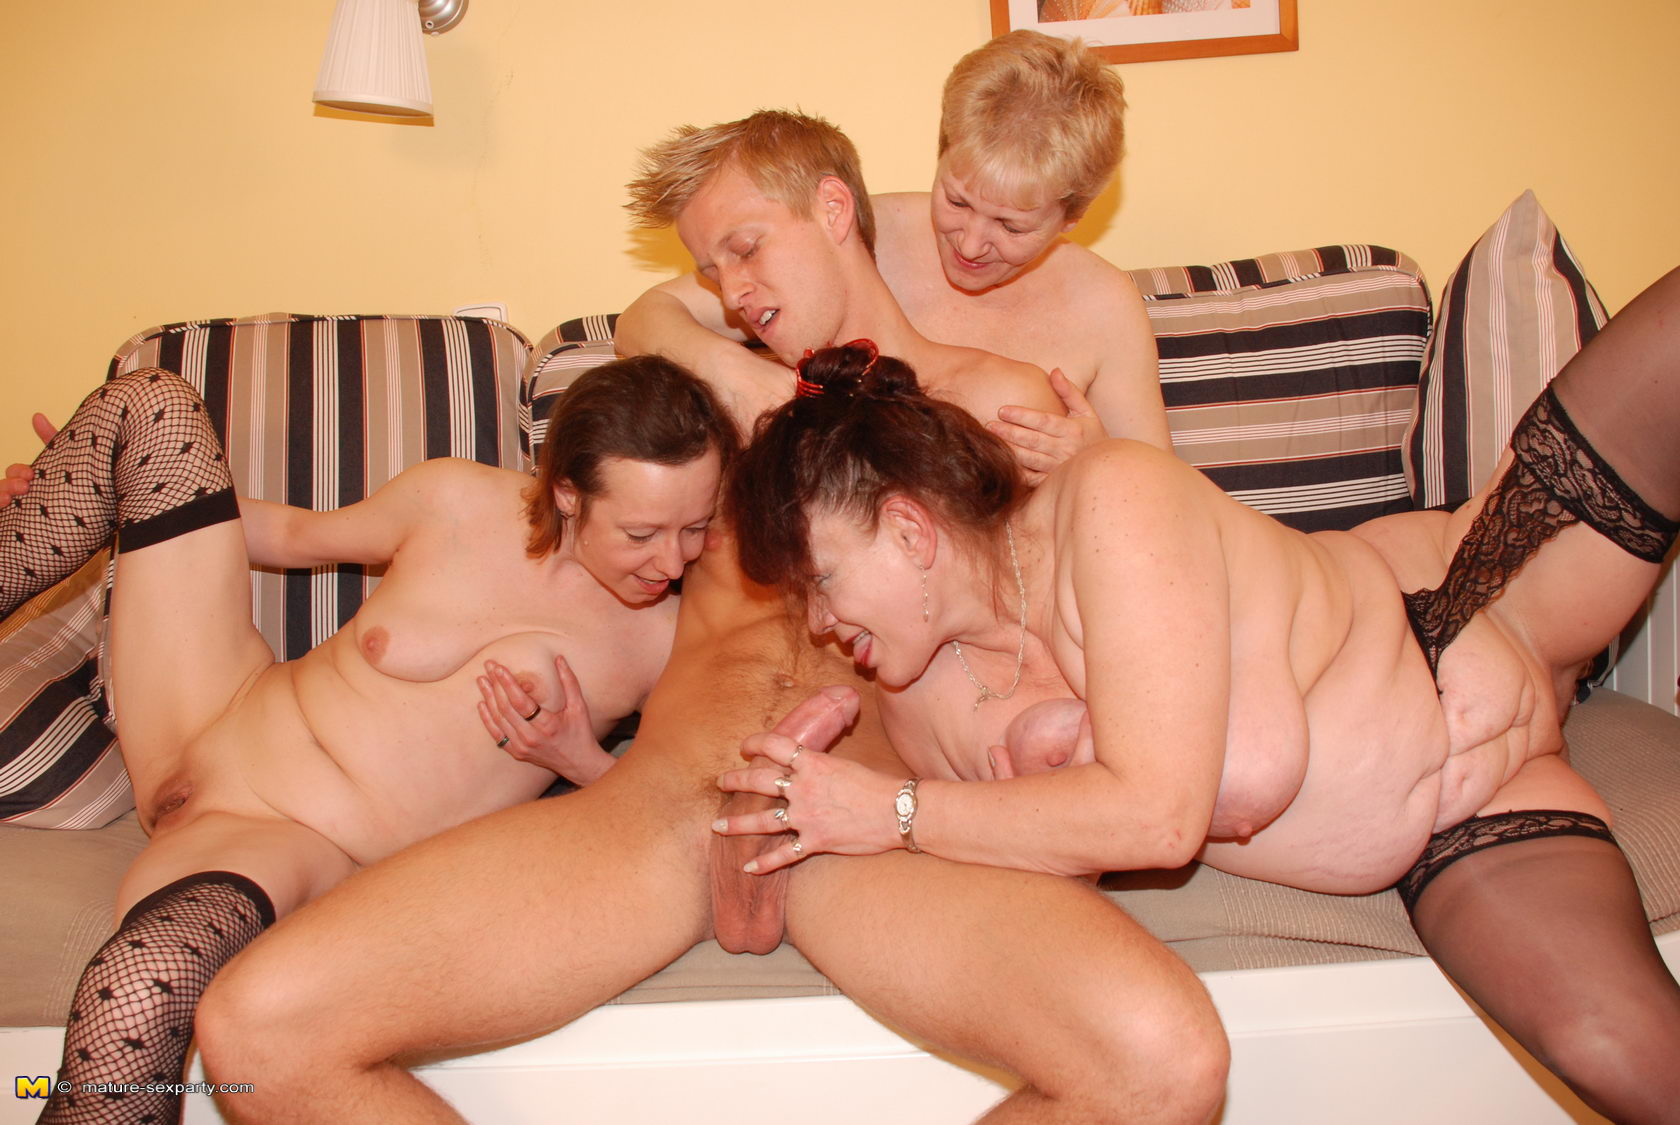 Mature Friends Having Sex